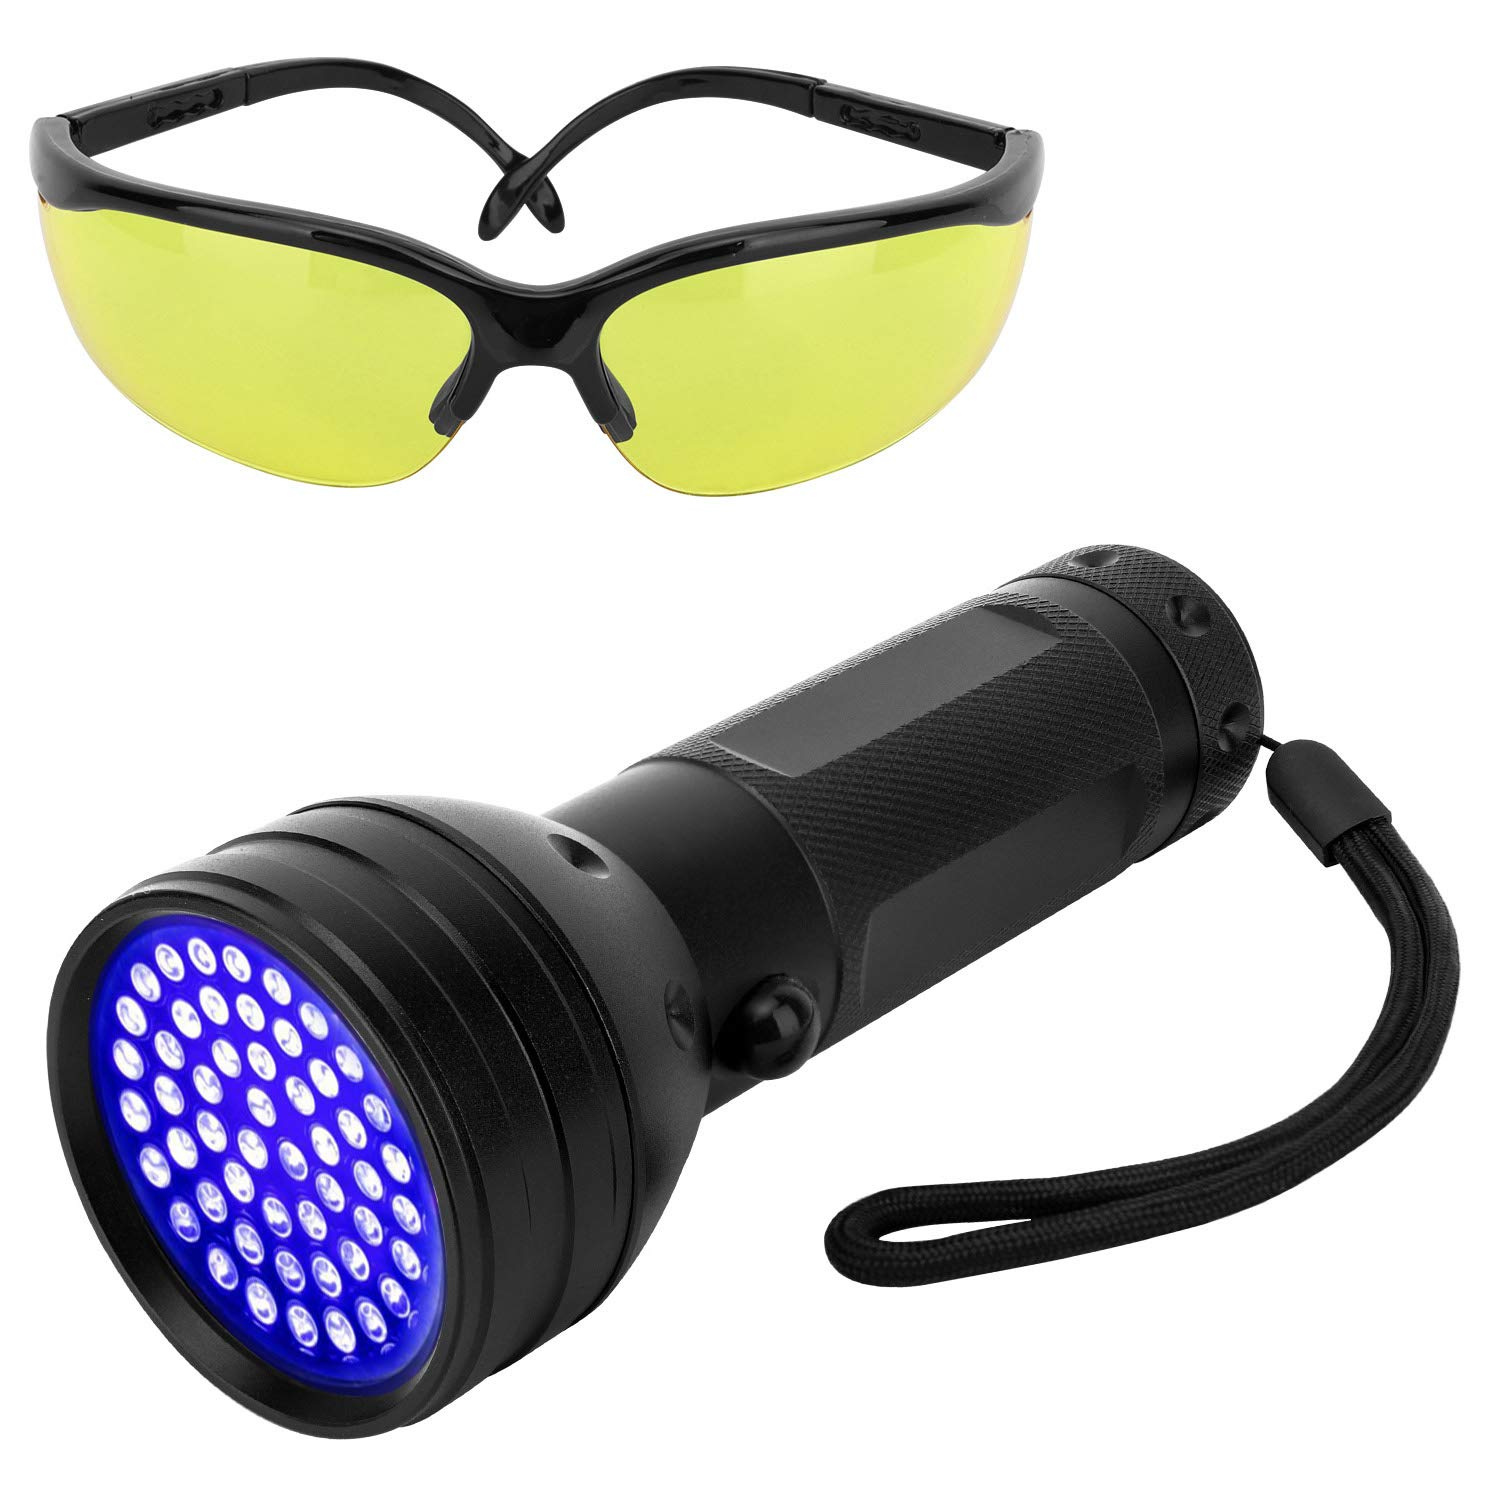 Pawaboo UV Blacklight Flashlight, 51 LED Ultraviolet 395nm UV Hand-held Detecting Torch for Pet Urine, Bed Bugs, Stains, Verifying Money Documents, UV Protecting Glasses Included, Black by Pawaboo